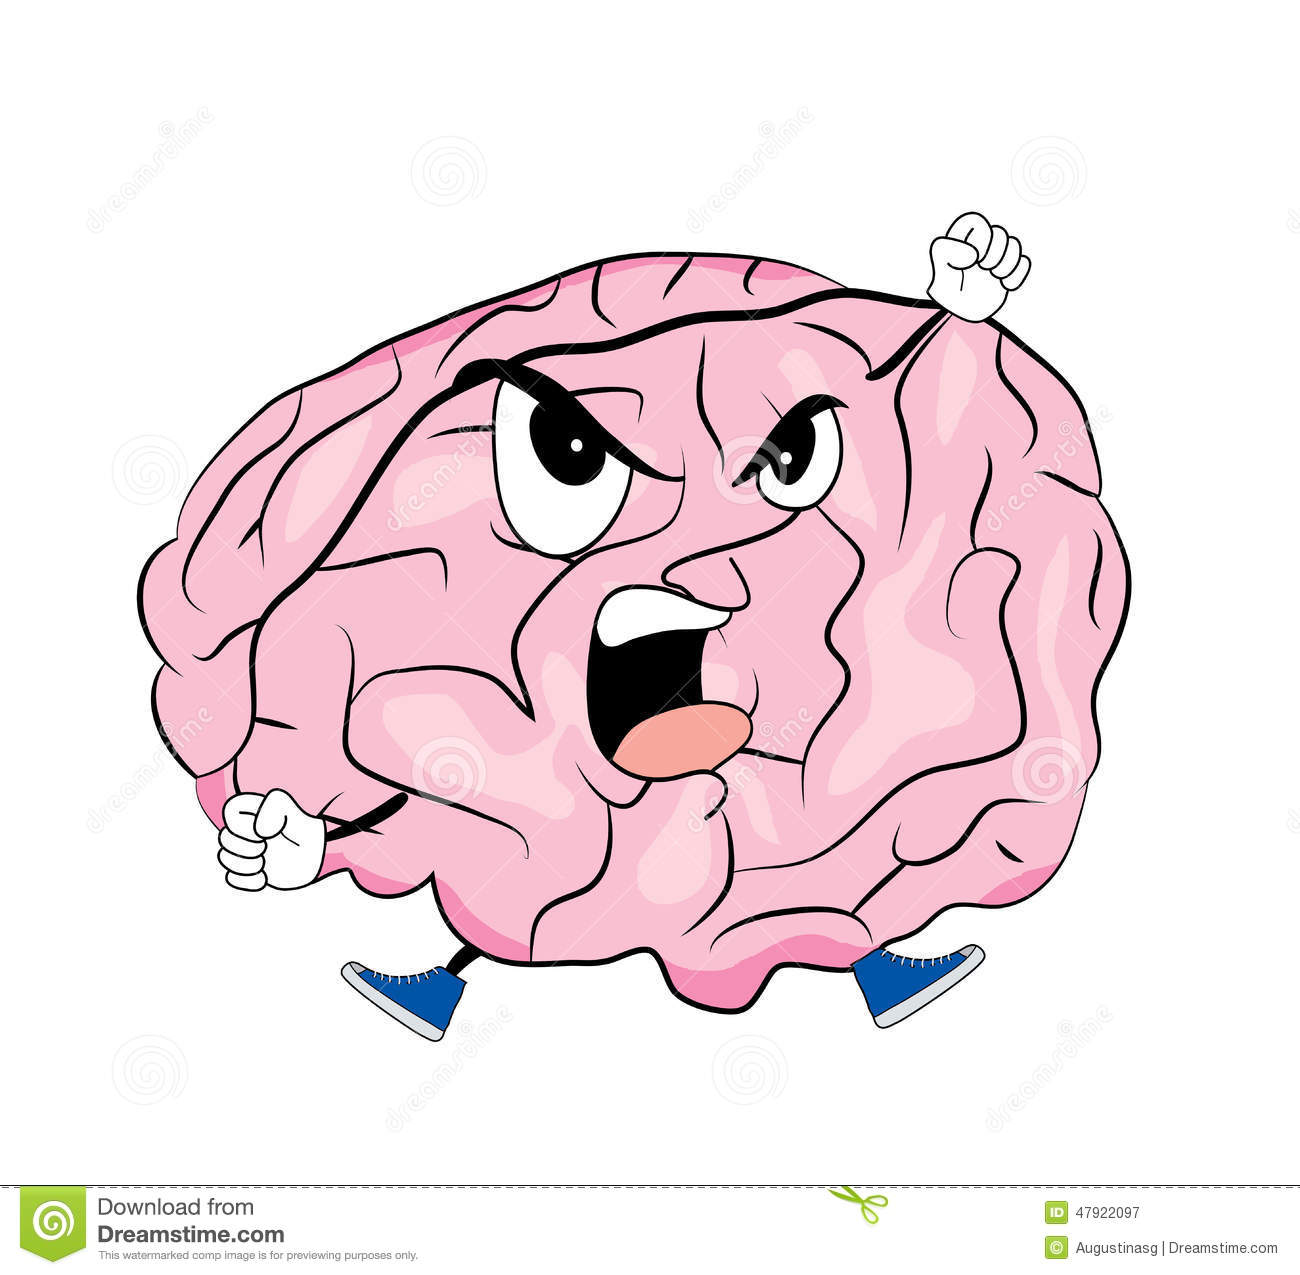 Angry Brain Clipart Stock Vector - Image: 77004496